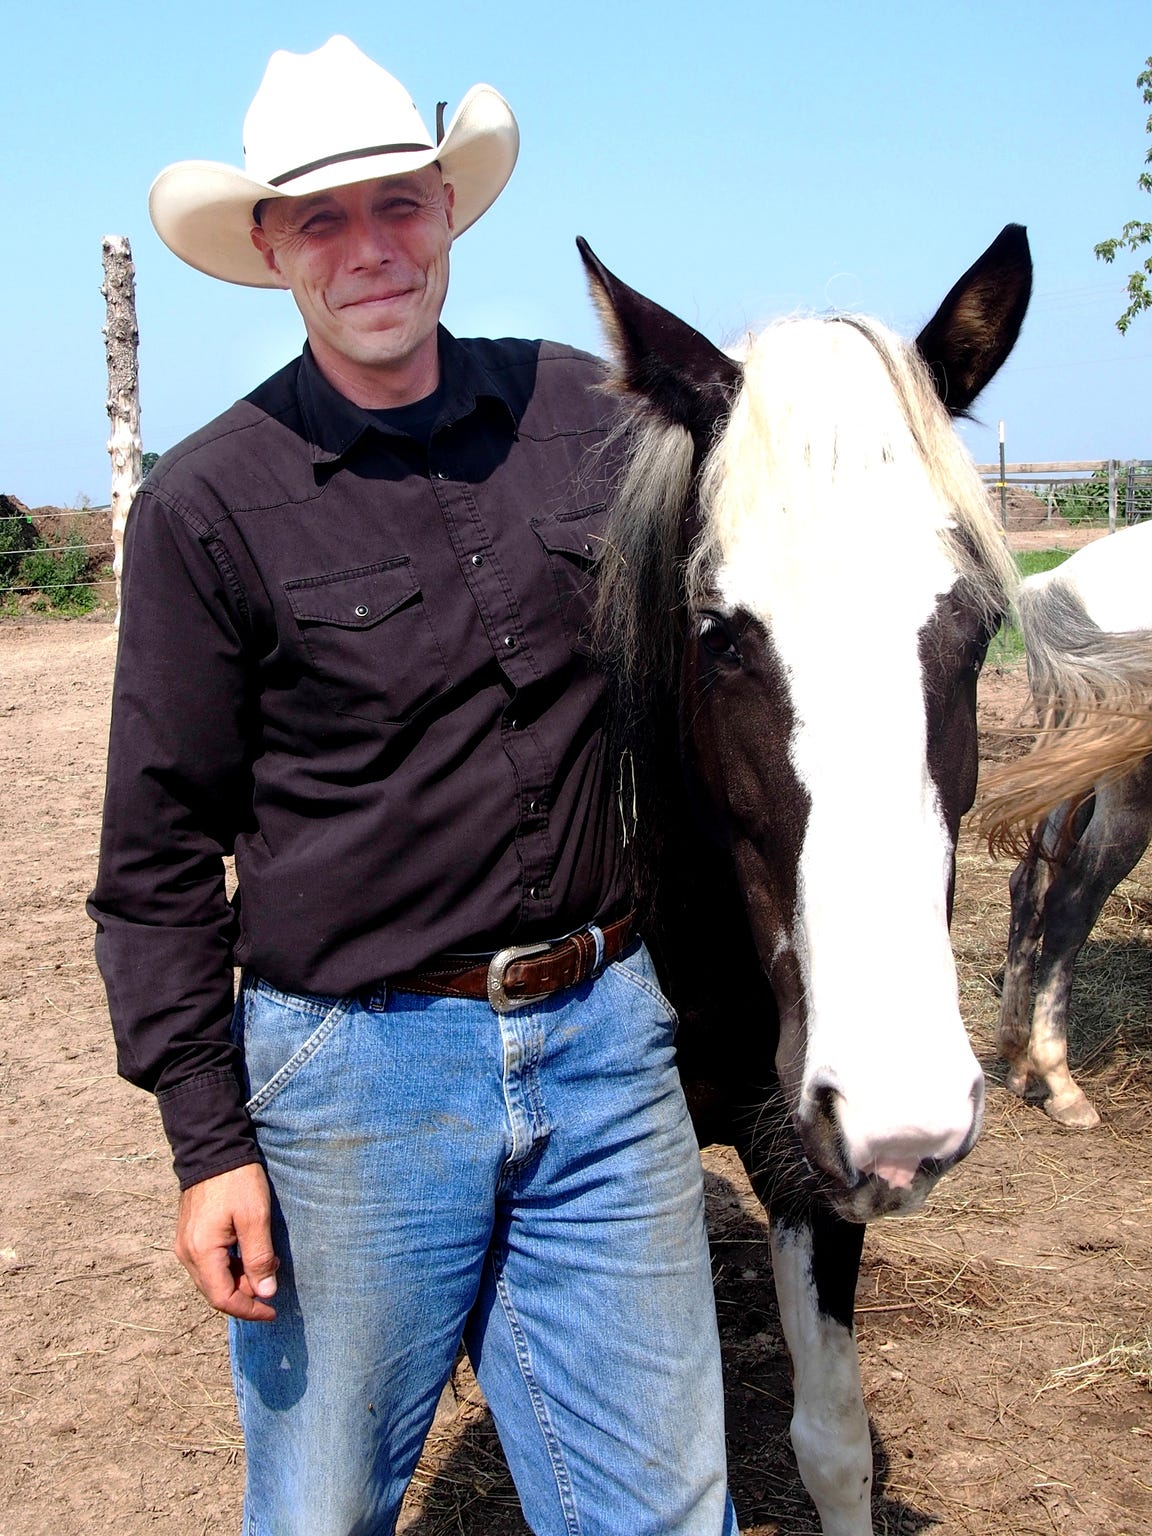 Pastor David ward and Valentine, his personal horse.